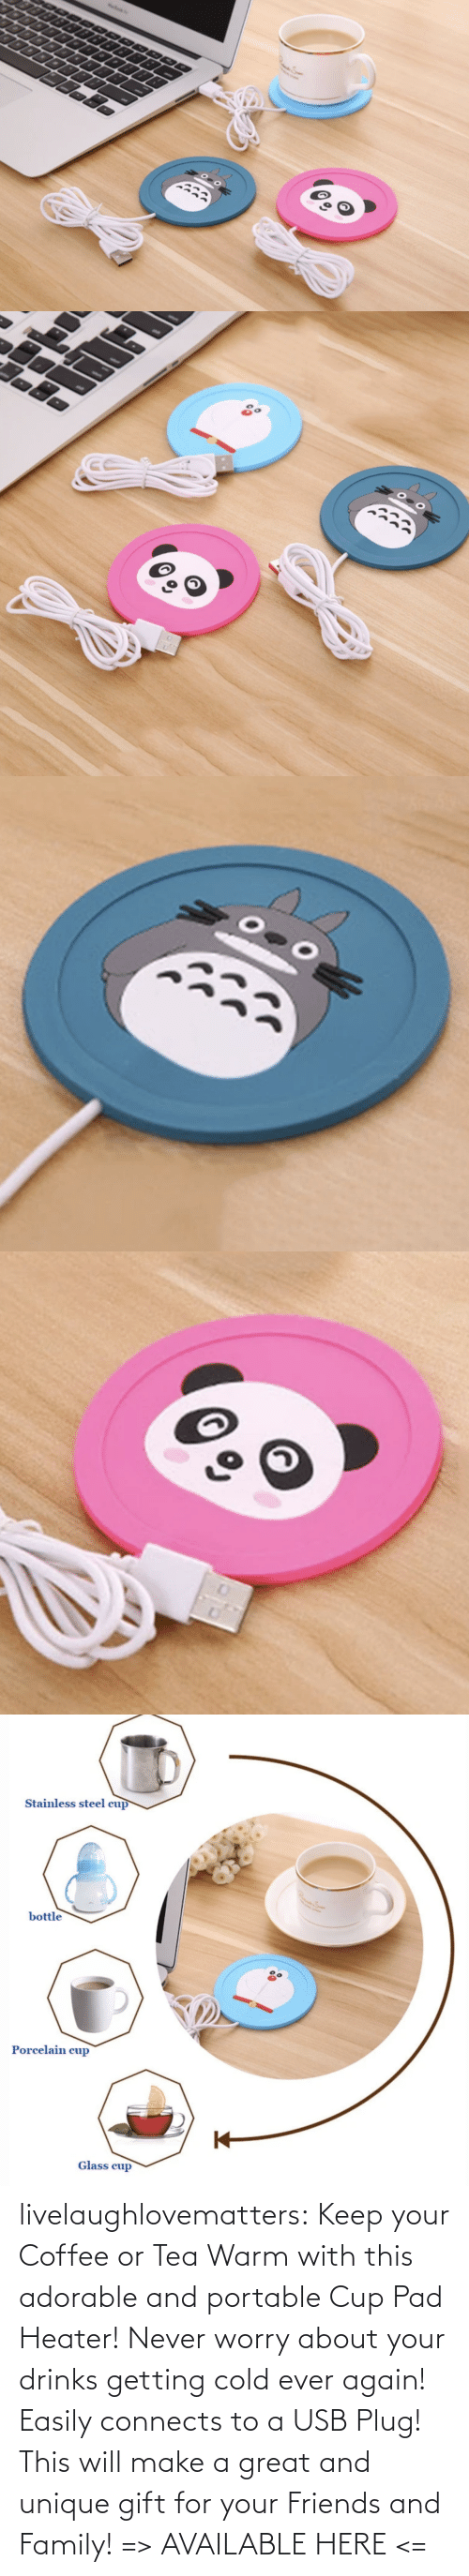 Family, Friends, and Tumblr: livelaughlovematters: Keep your Coffee or Tea Warm with this adorable and portable Cup Pad Heater! Never worry about your drinks getting cold ever again! Easily connects to a USB Plug! This will make a great and unique gift for your Friends and Family! => AVAILABLE HERE <=